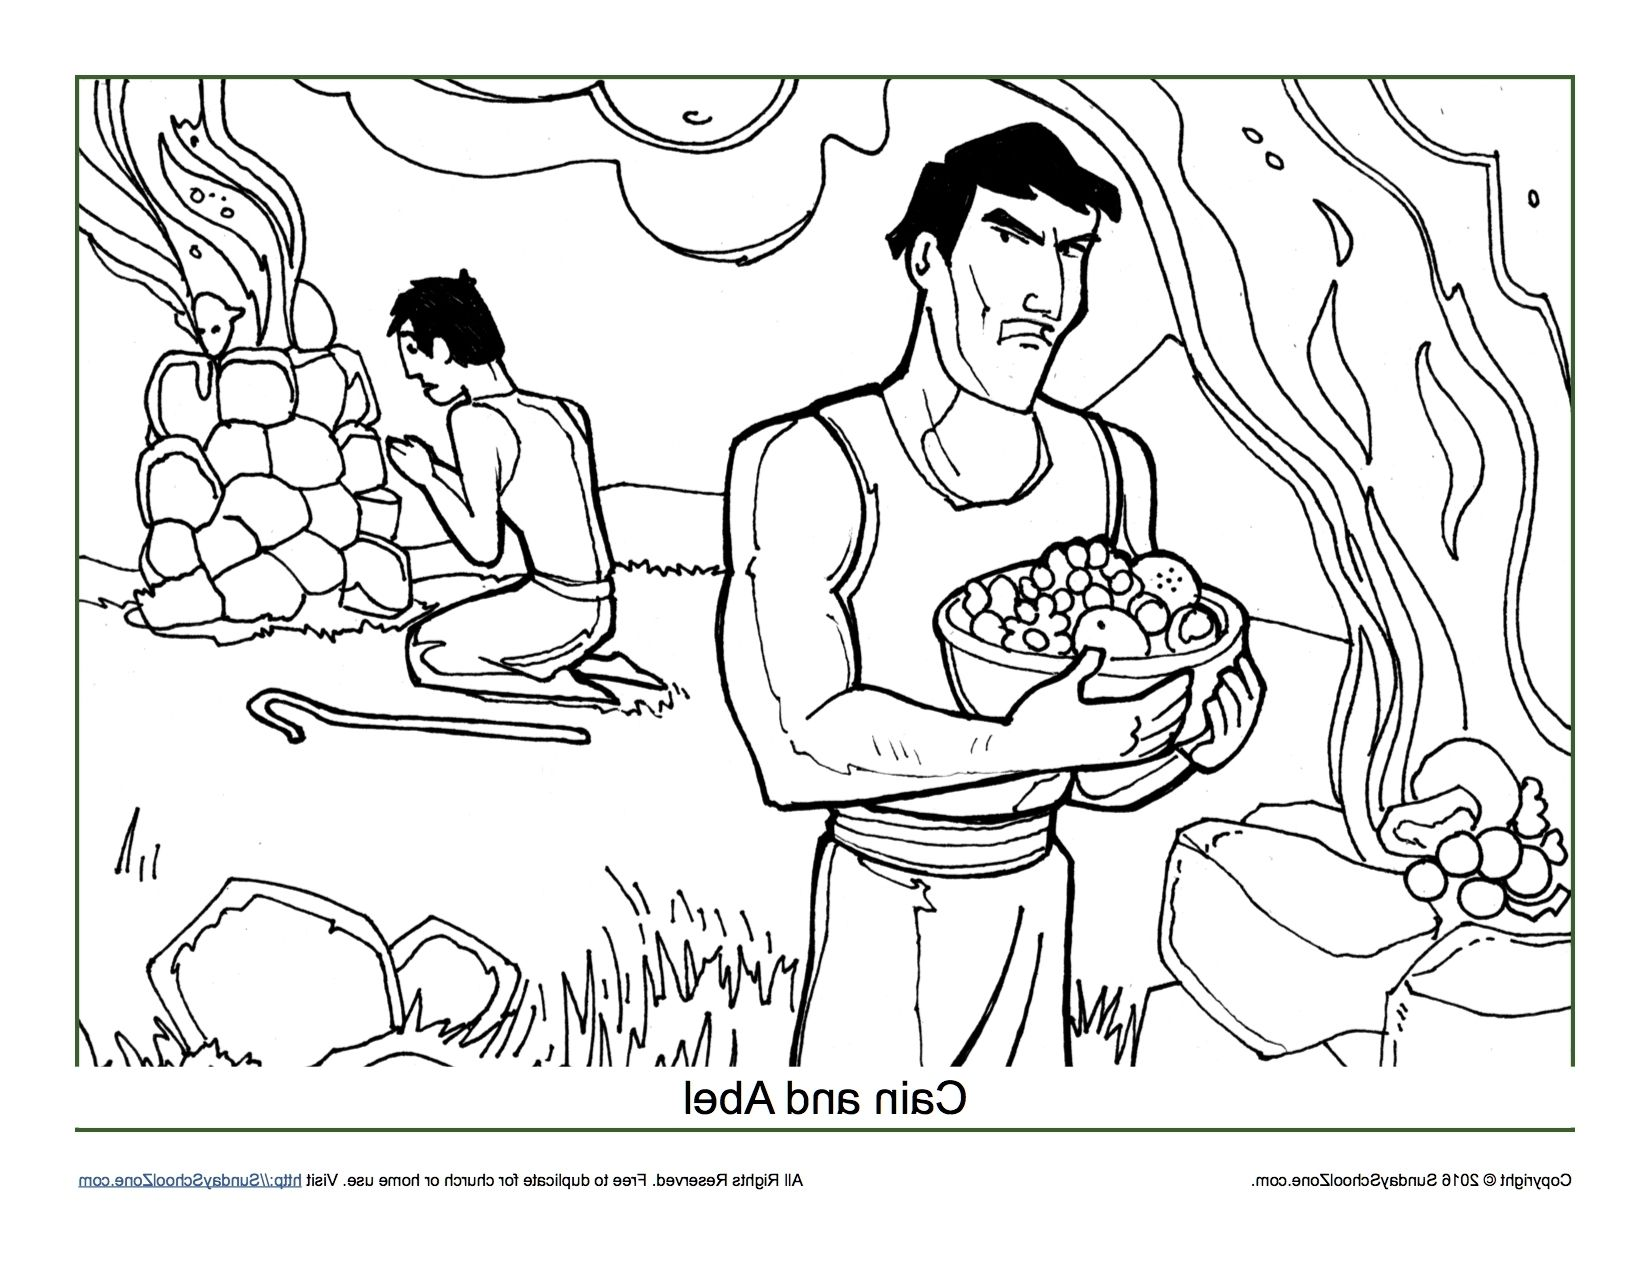 Cain And Abel Coloring Page Cain And Abel Bible Coloring Pages Bible Coloring